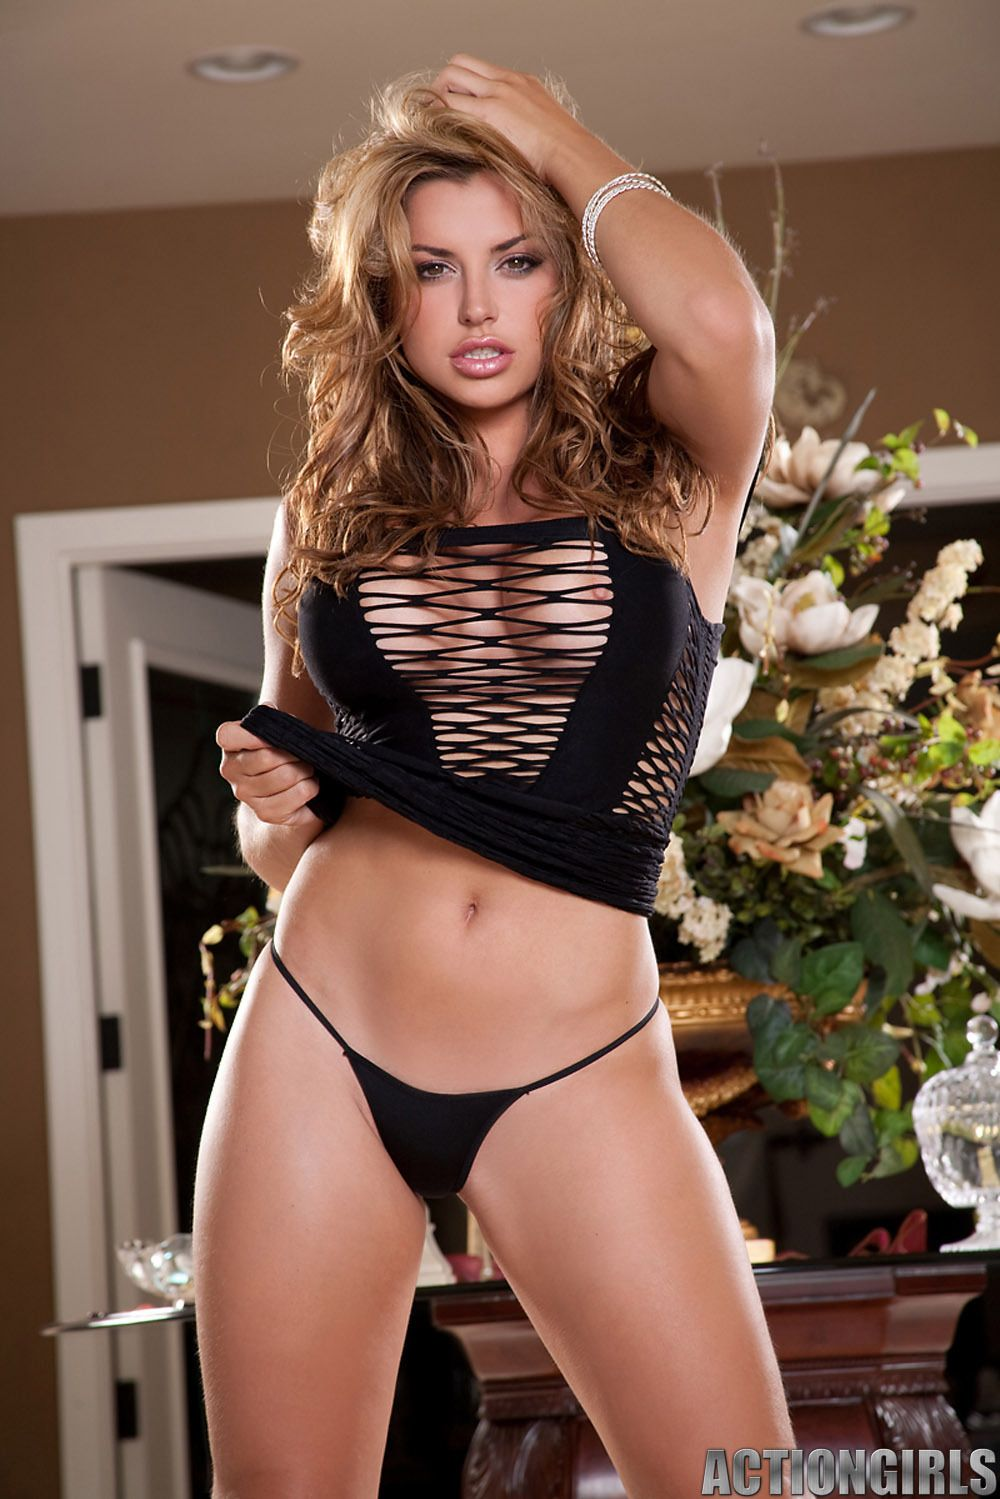 Porno Louise Glover  nudes (62 photo), Twitter, cleavage